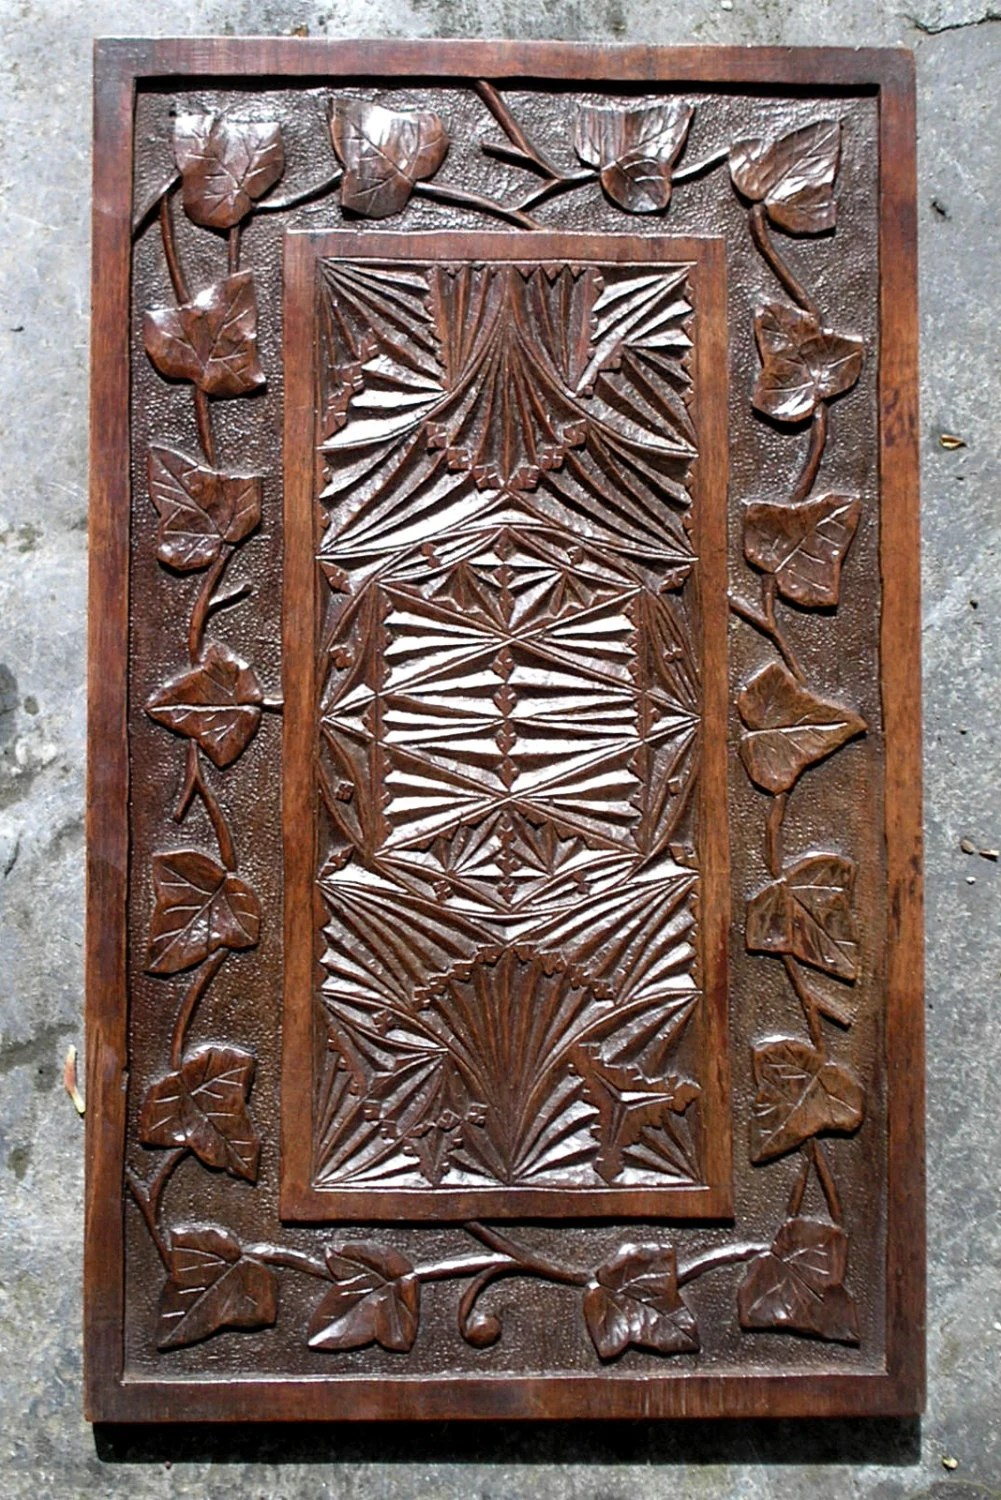 Antique arts crafts carved panel with intricate gothic